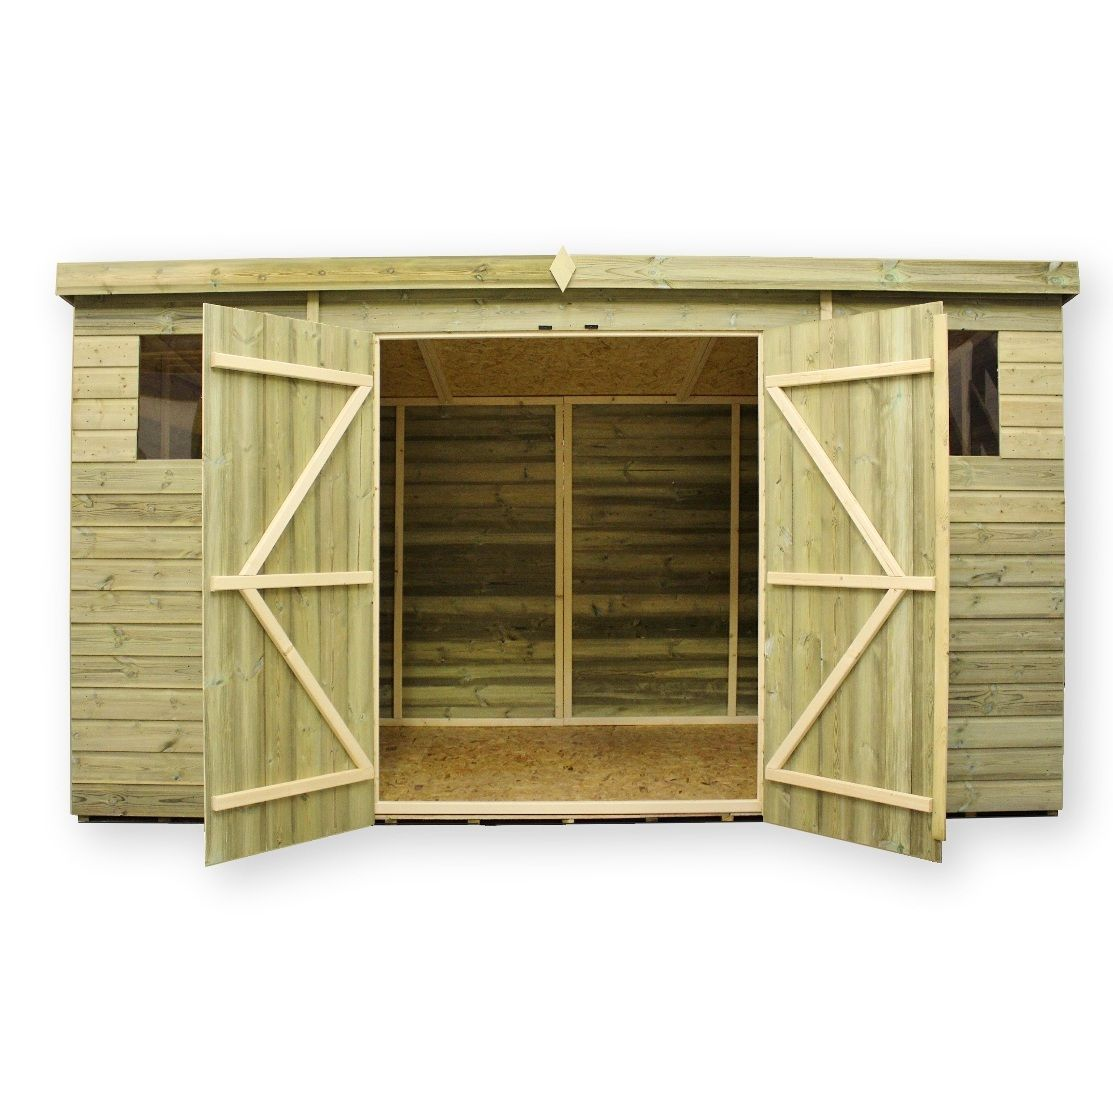 Pin By Boat Plans Layout On Shed Ideas Shed Plans Wooden Sheds Shed